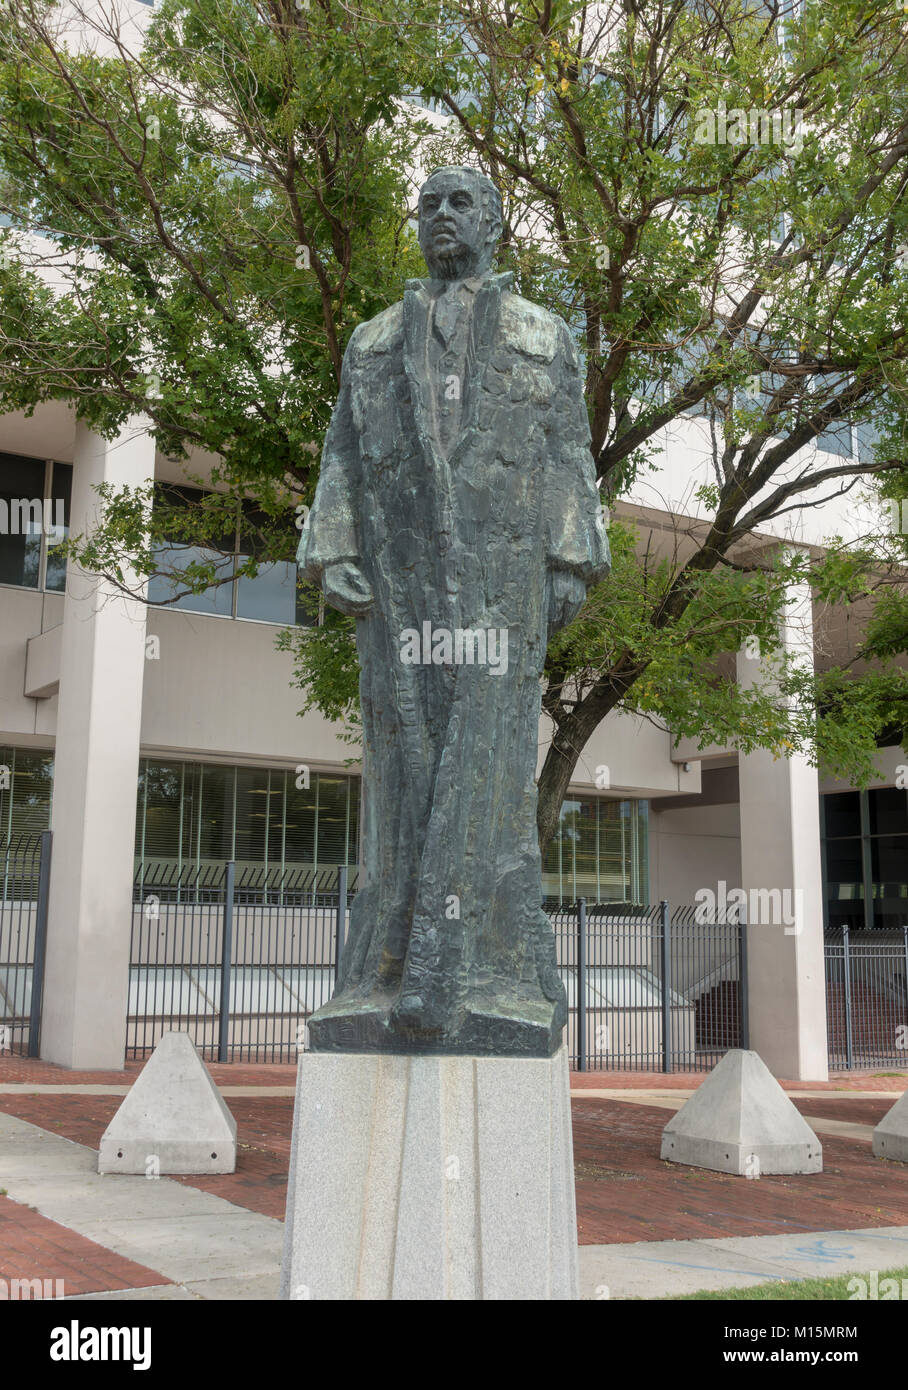 Thurgood Marshall statue by Reuben Kramer (1979) in Baltimore, Maryland, United States. - Stock Image